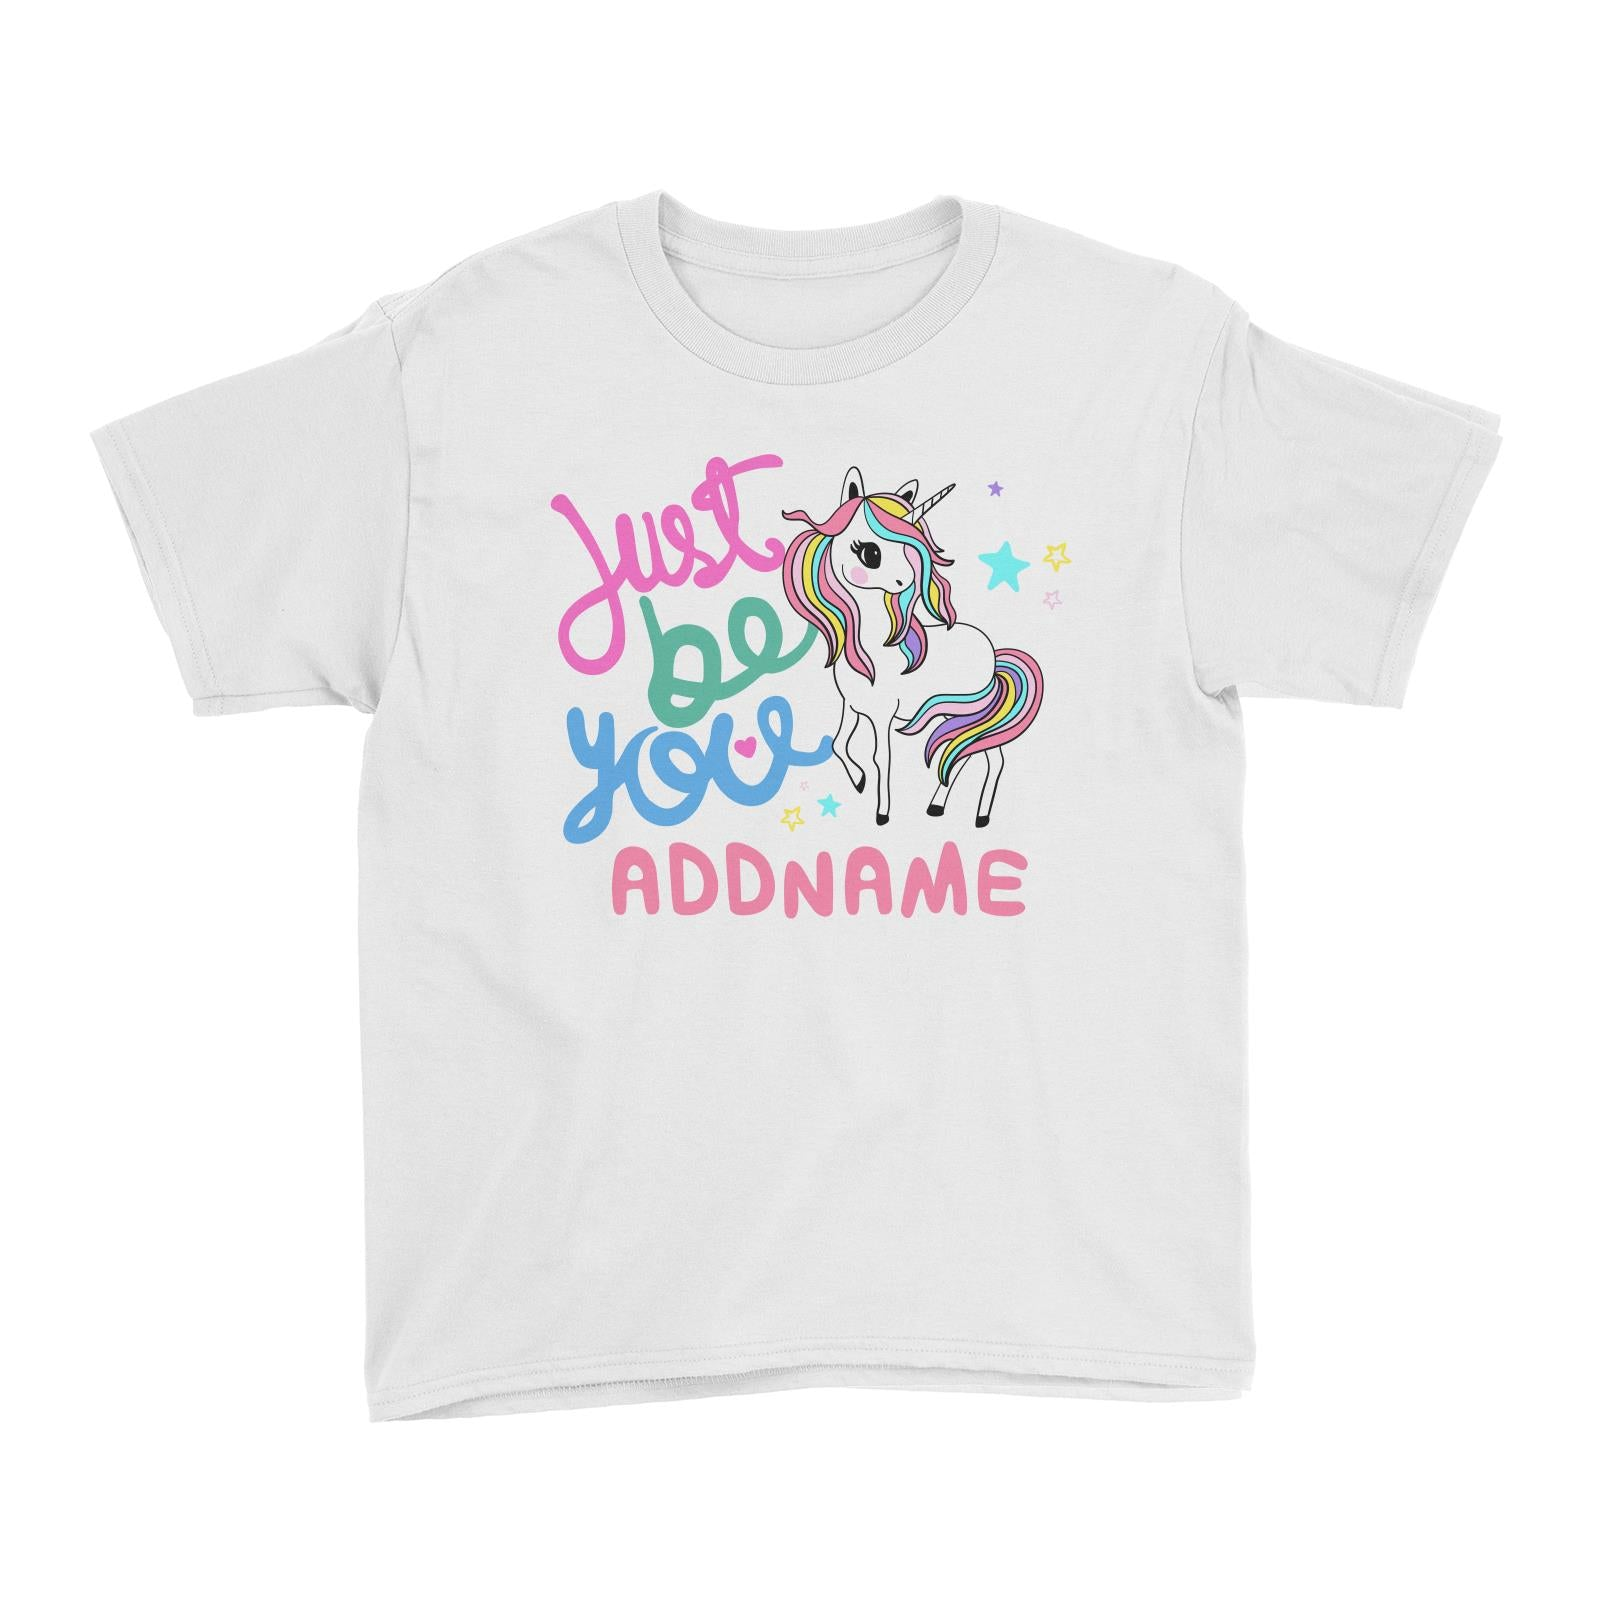 Children's Day Gift Series Just Be You Cute Unicorn Addname Kid's T-Shirt